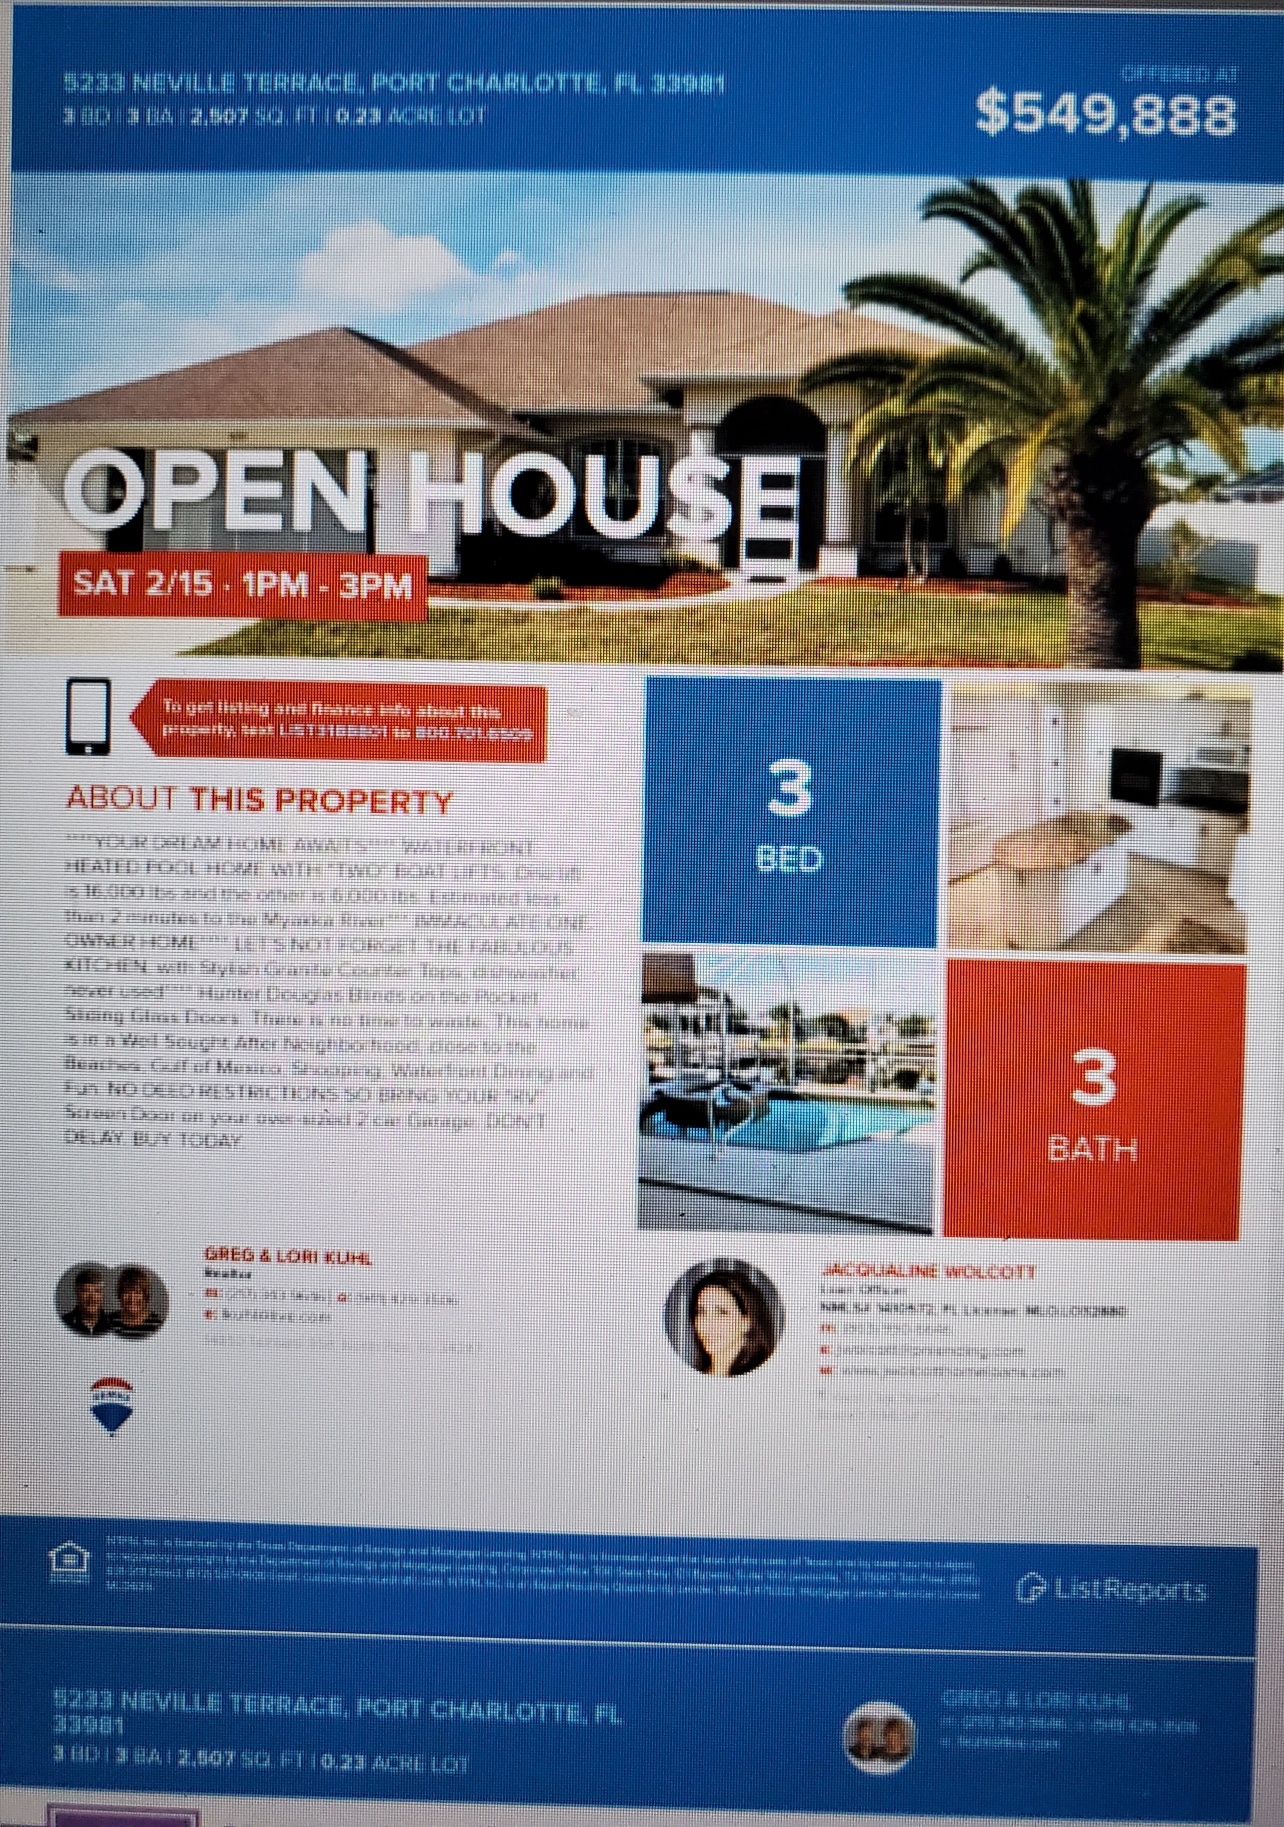 Open House Sat 1 to 3